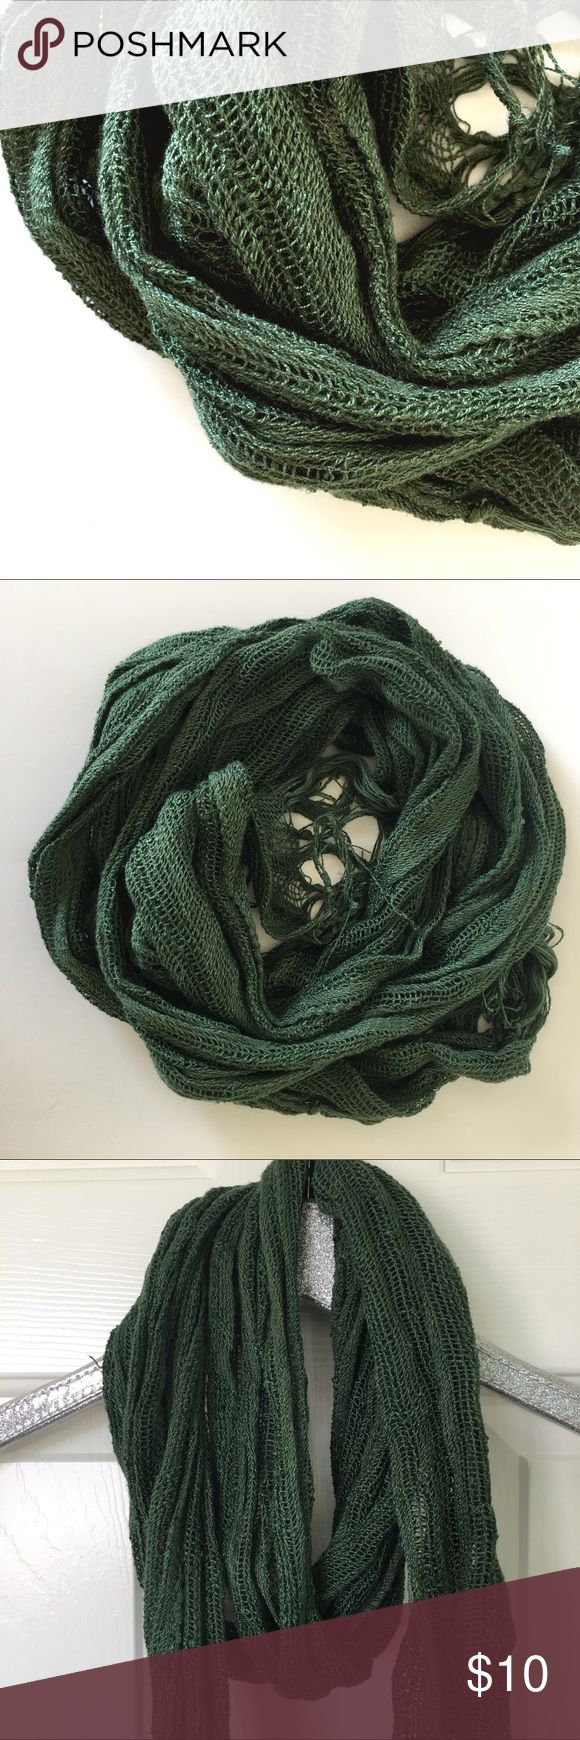 Green knitted long scarf This scarf is knitted and has an open weave. It is from world cost plus market.  A great layering scarf! World Cost Plus Market Accessories Scarves & Wraps